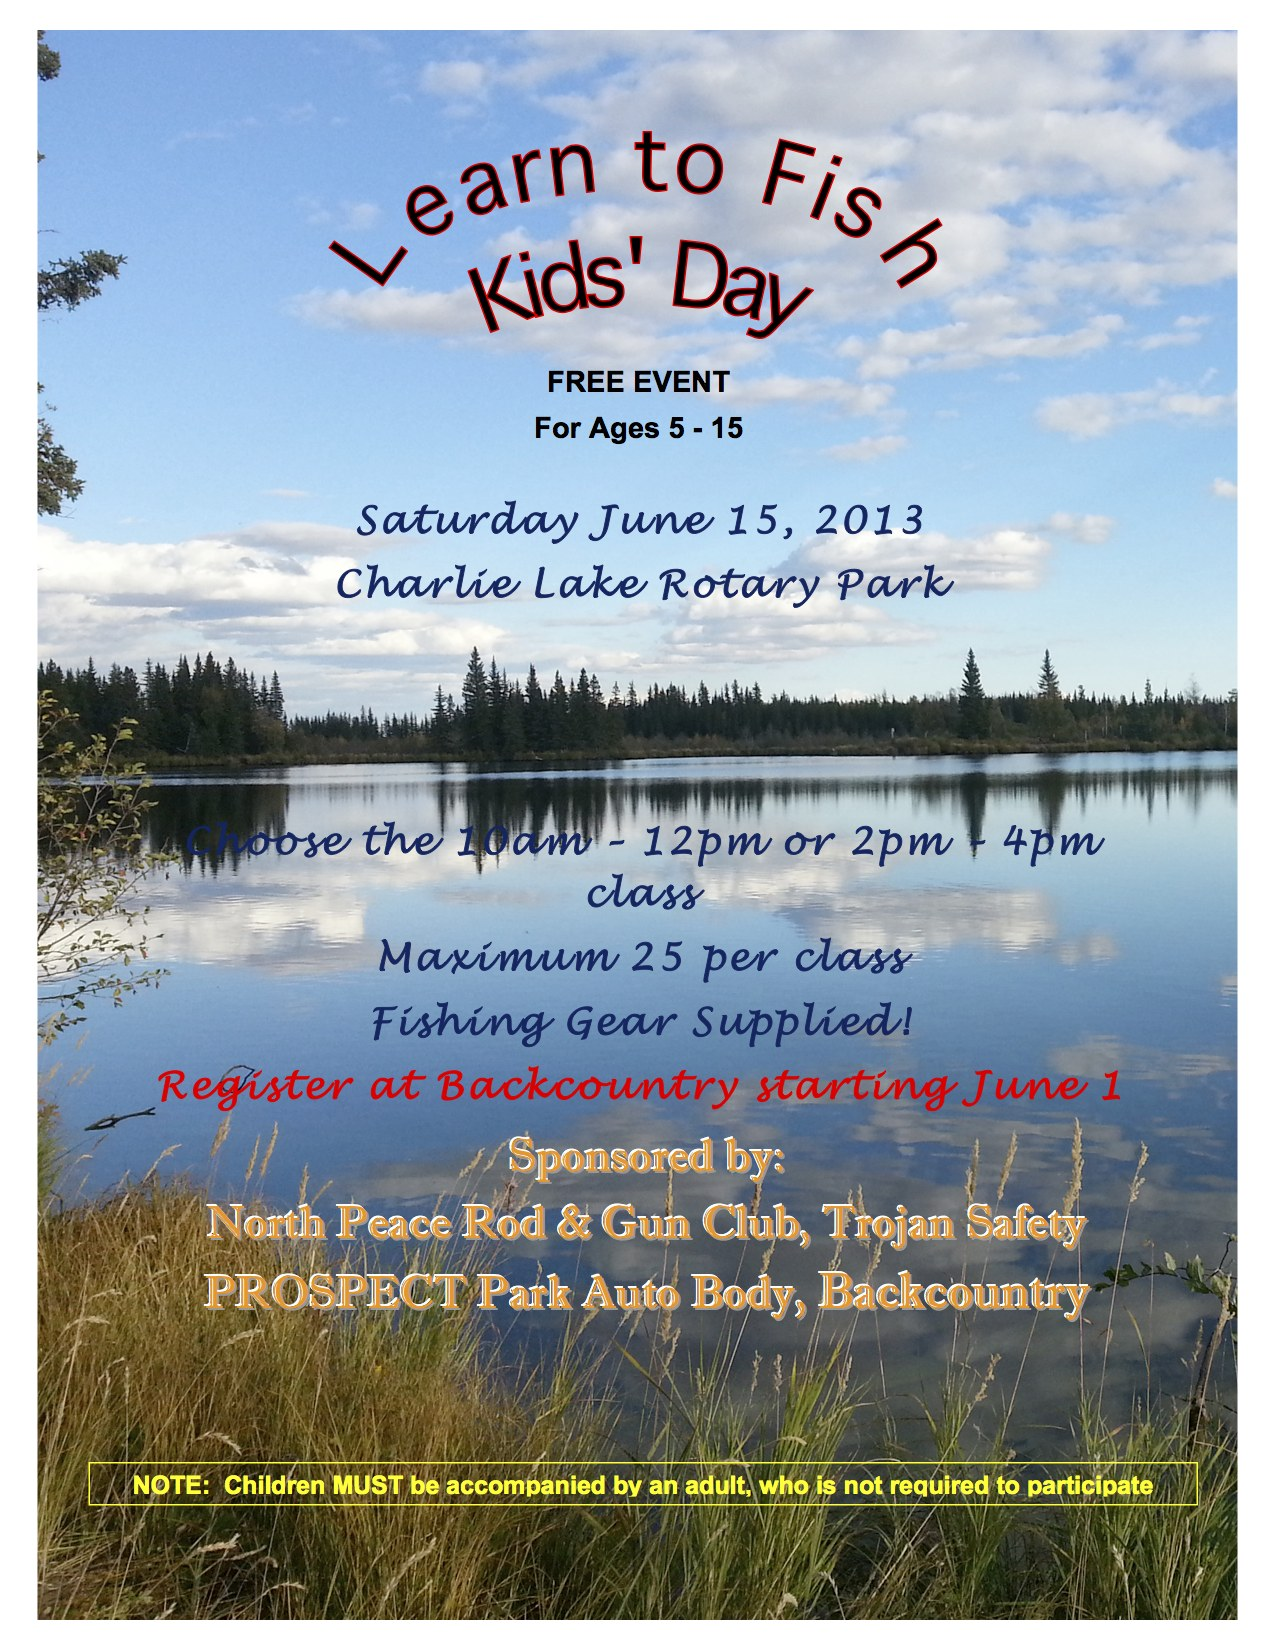 Learn to fish kids day north peace rod and gun club for Learn to fish